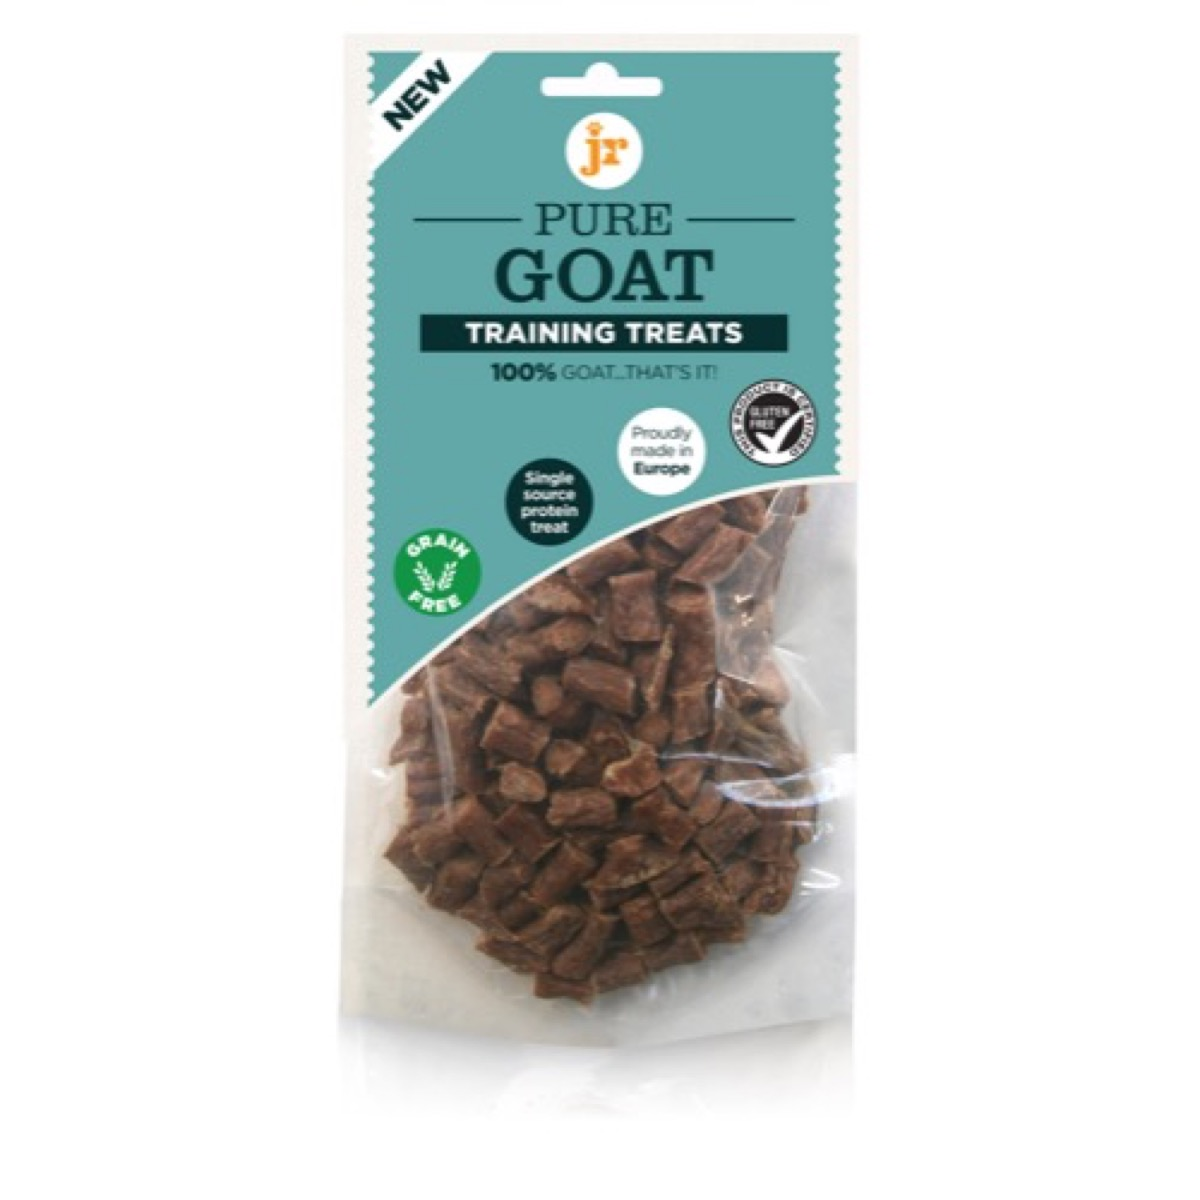 JR Pet Products Pure Goat Training Treats 85g